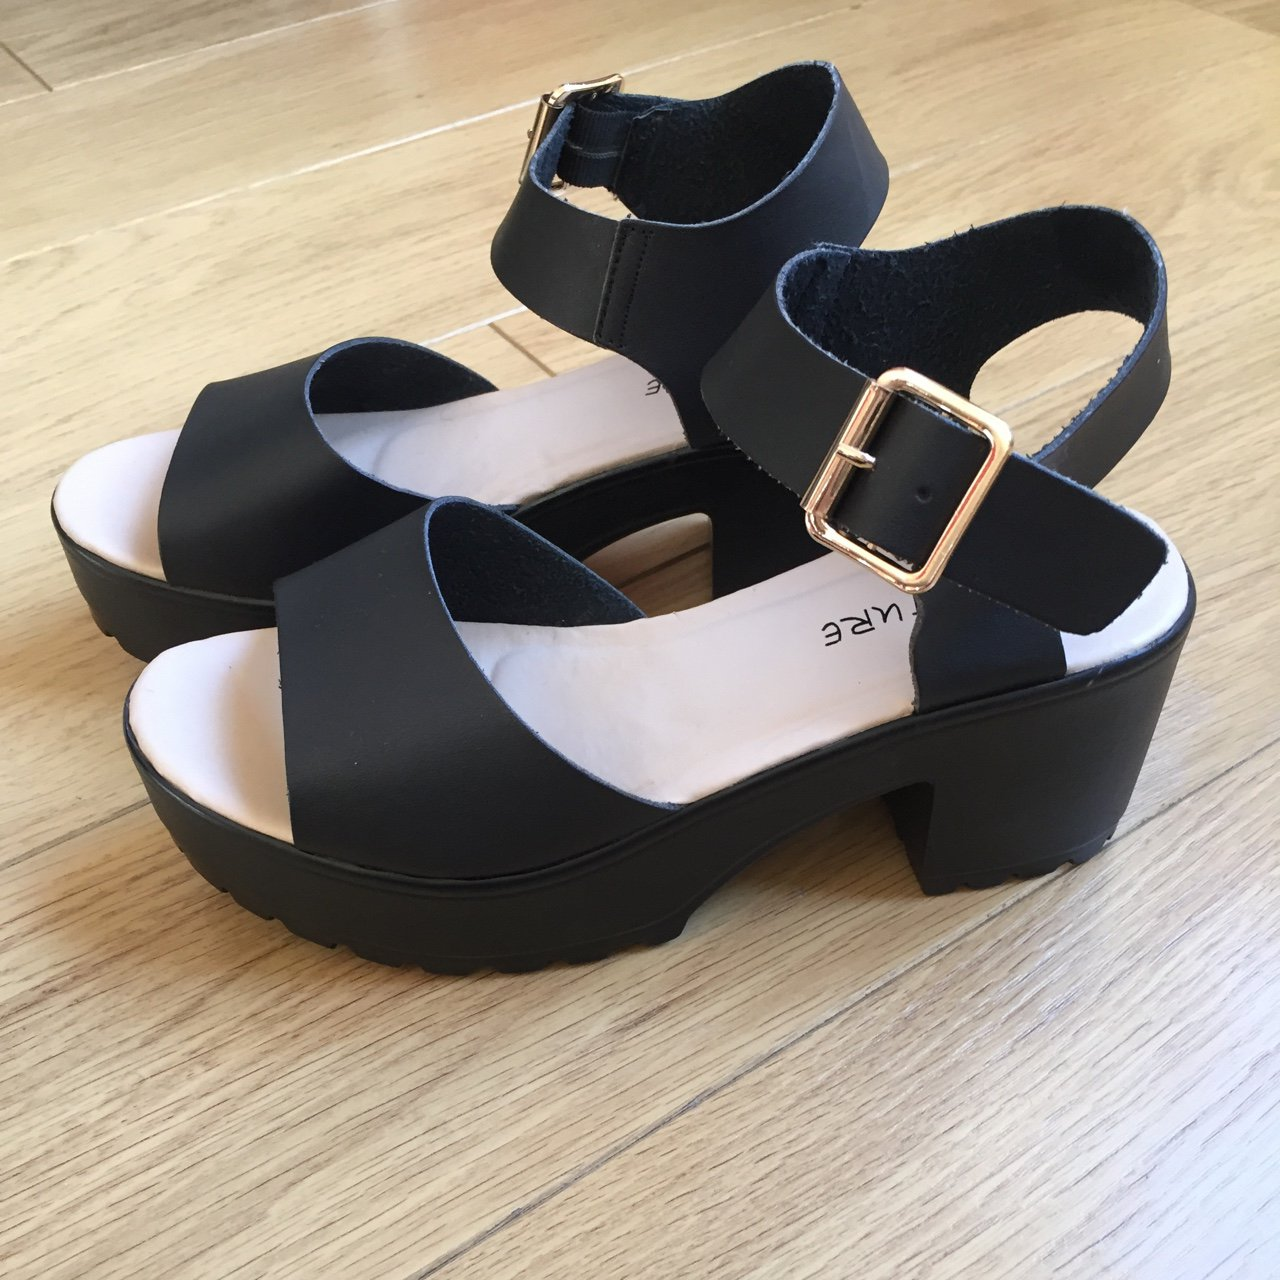 f0acf902dc35 Boohoo chunky sandals. Size 5. Tried on at home and removed - Depop